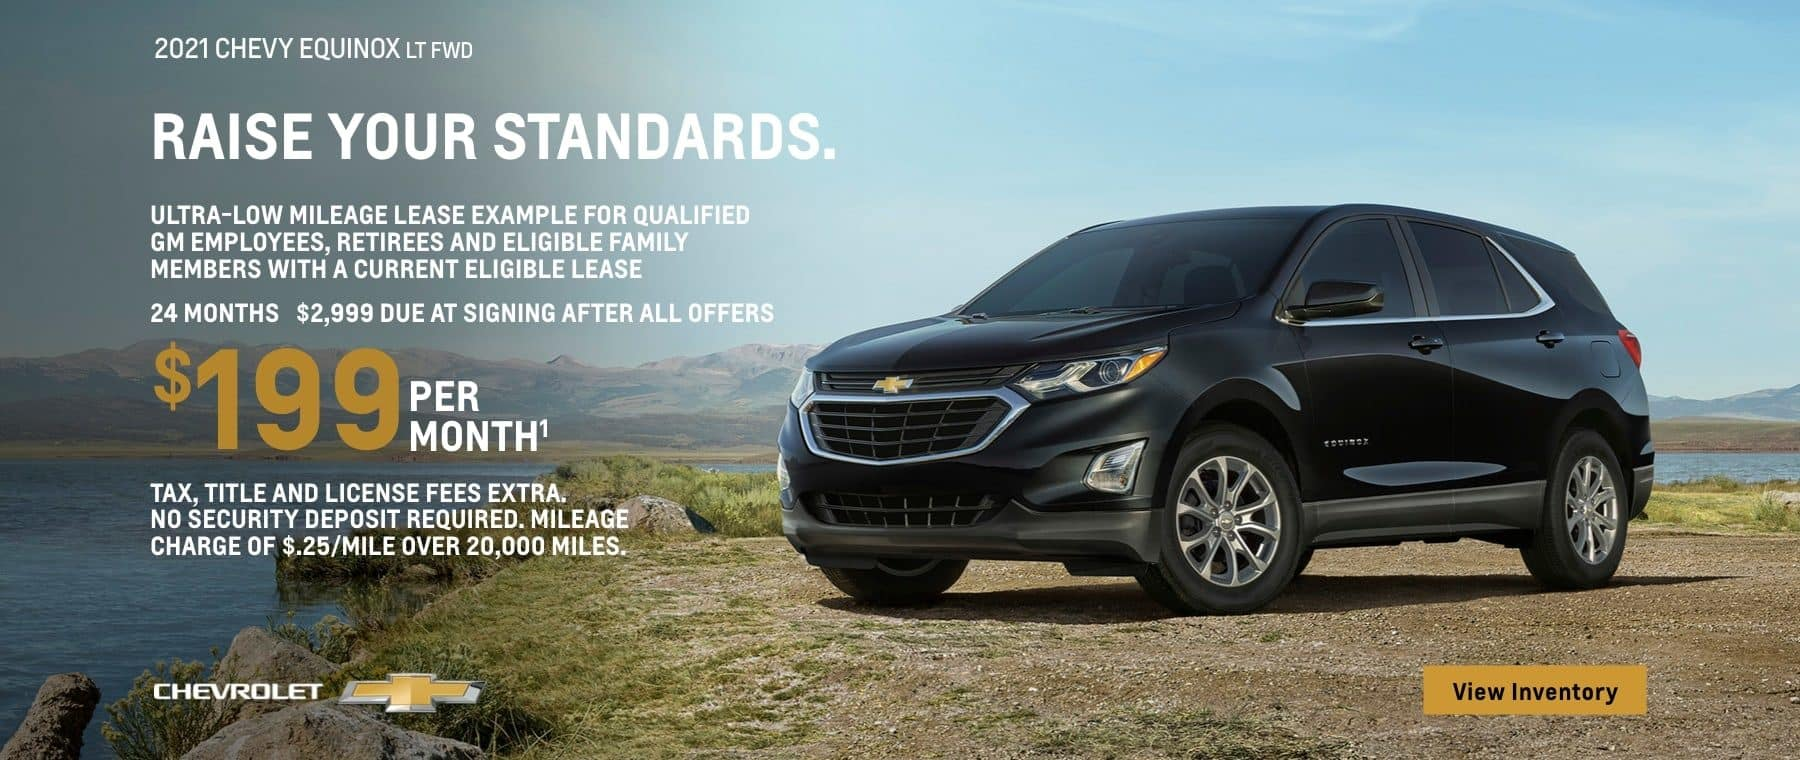 2021 Chevy Equinox LT FWD. Raise your standards. Ultra-low mileage lease example for qualified GM employees, retirees, and eligible family members with a current eligible lease. $199 per month. 24 months. $2,299 due at signing after all offers. Take, title and license fees extra. No security deposit required. Mileage charge of $.25/mile over 20,000.